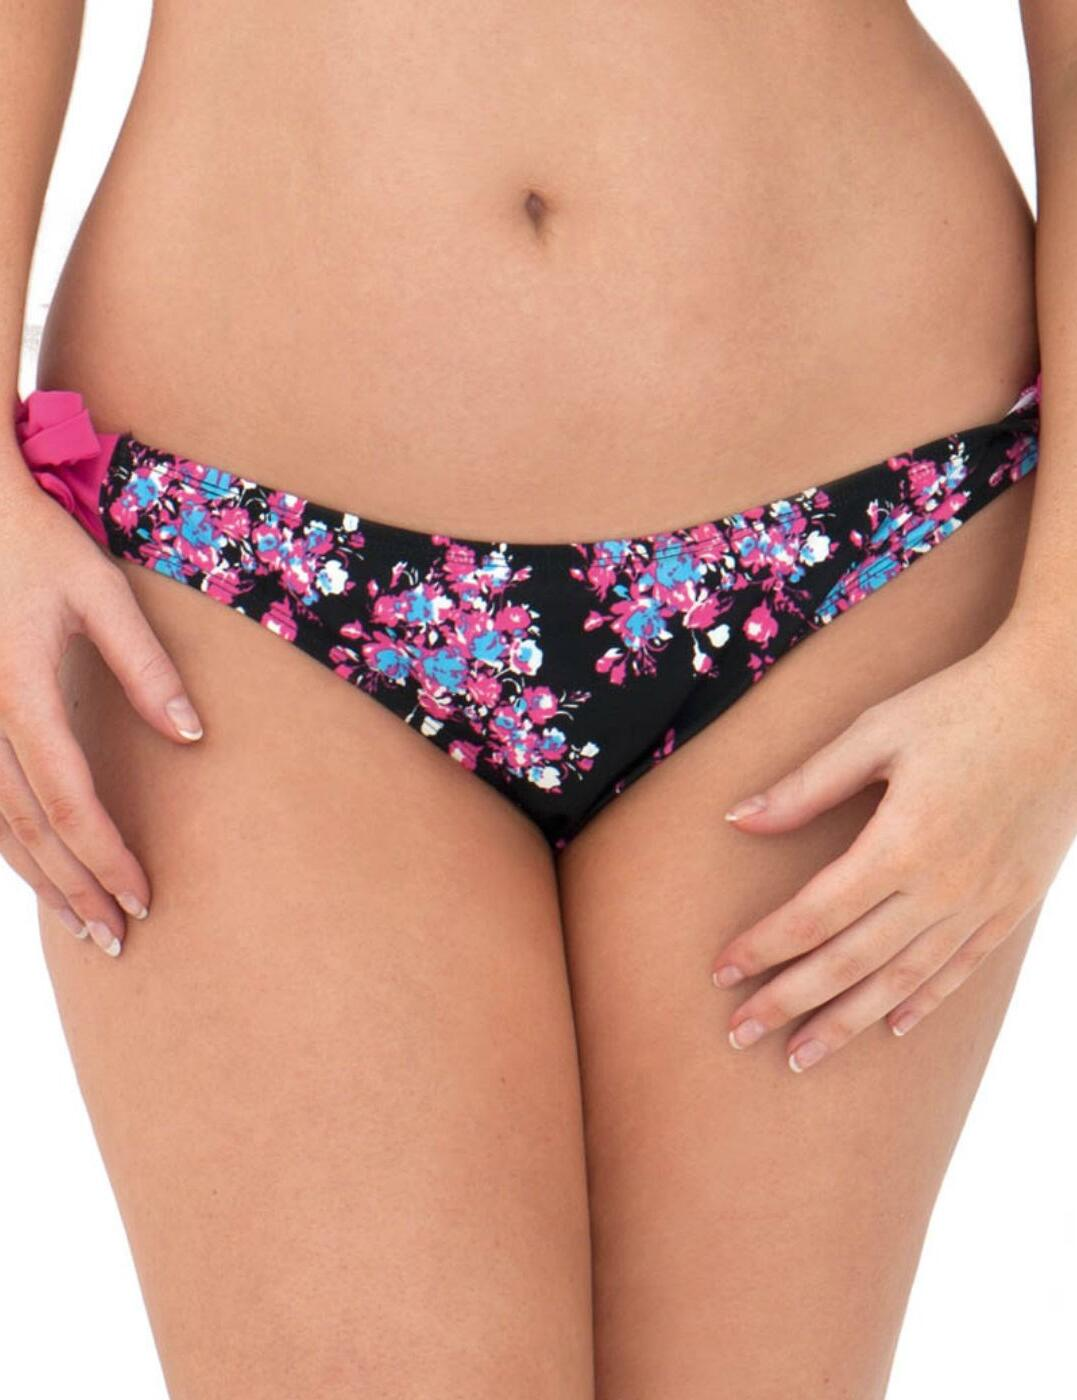 CS2515 Curvy Kate Moonflower Ruffle Tie Side Brief Black/Floral - CS2515 Tie Side Brief